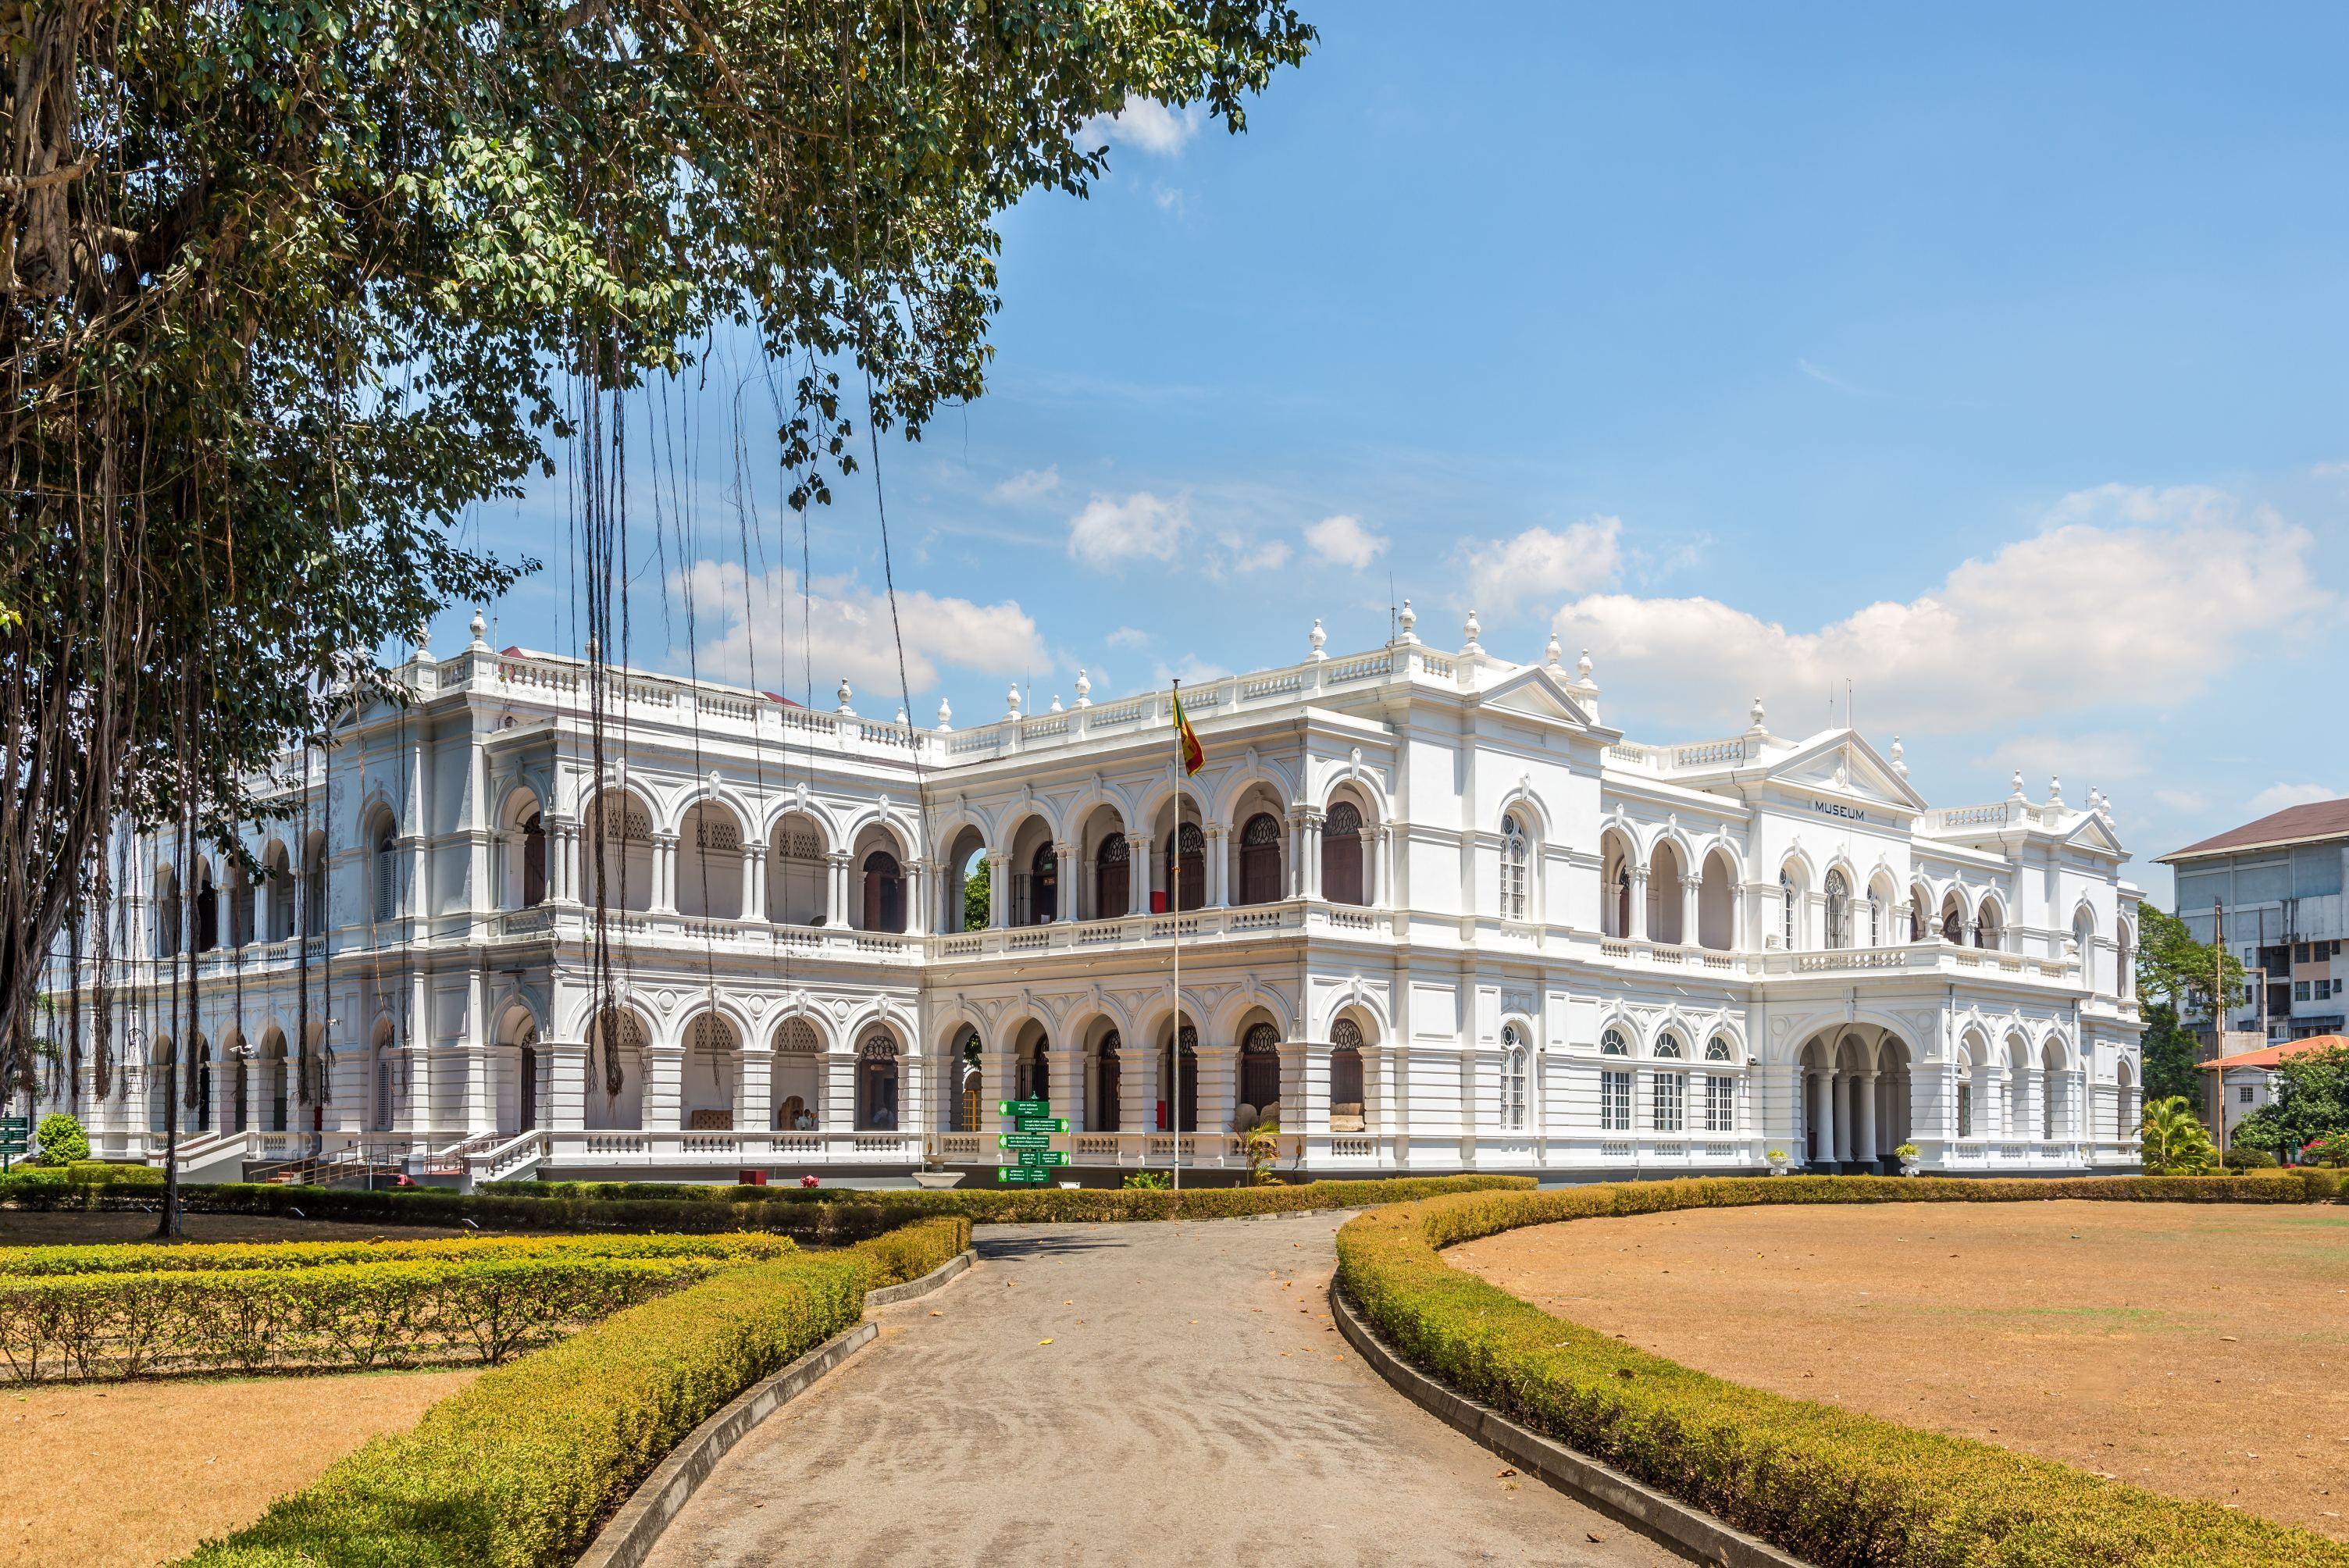 The National Museum of Colombo Colombo Sri Lanka